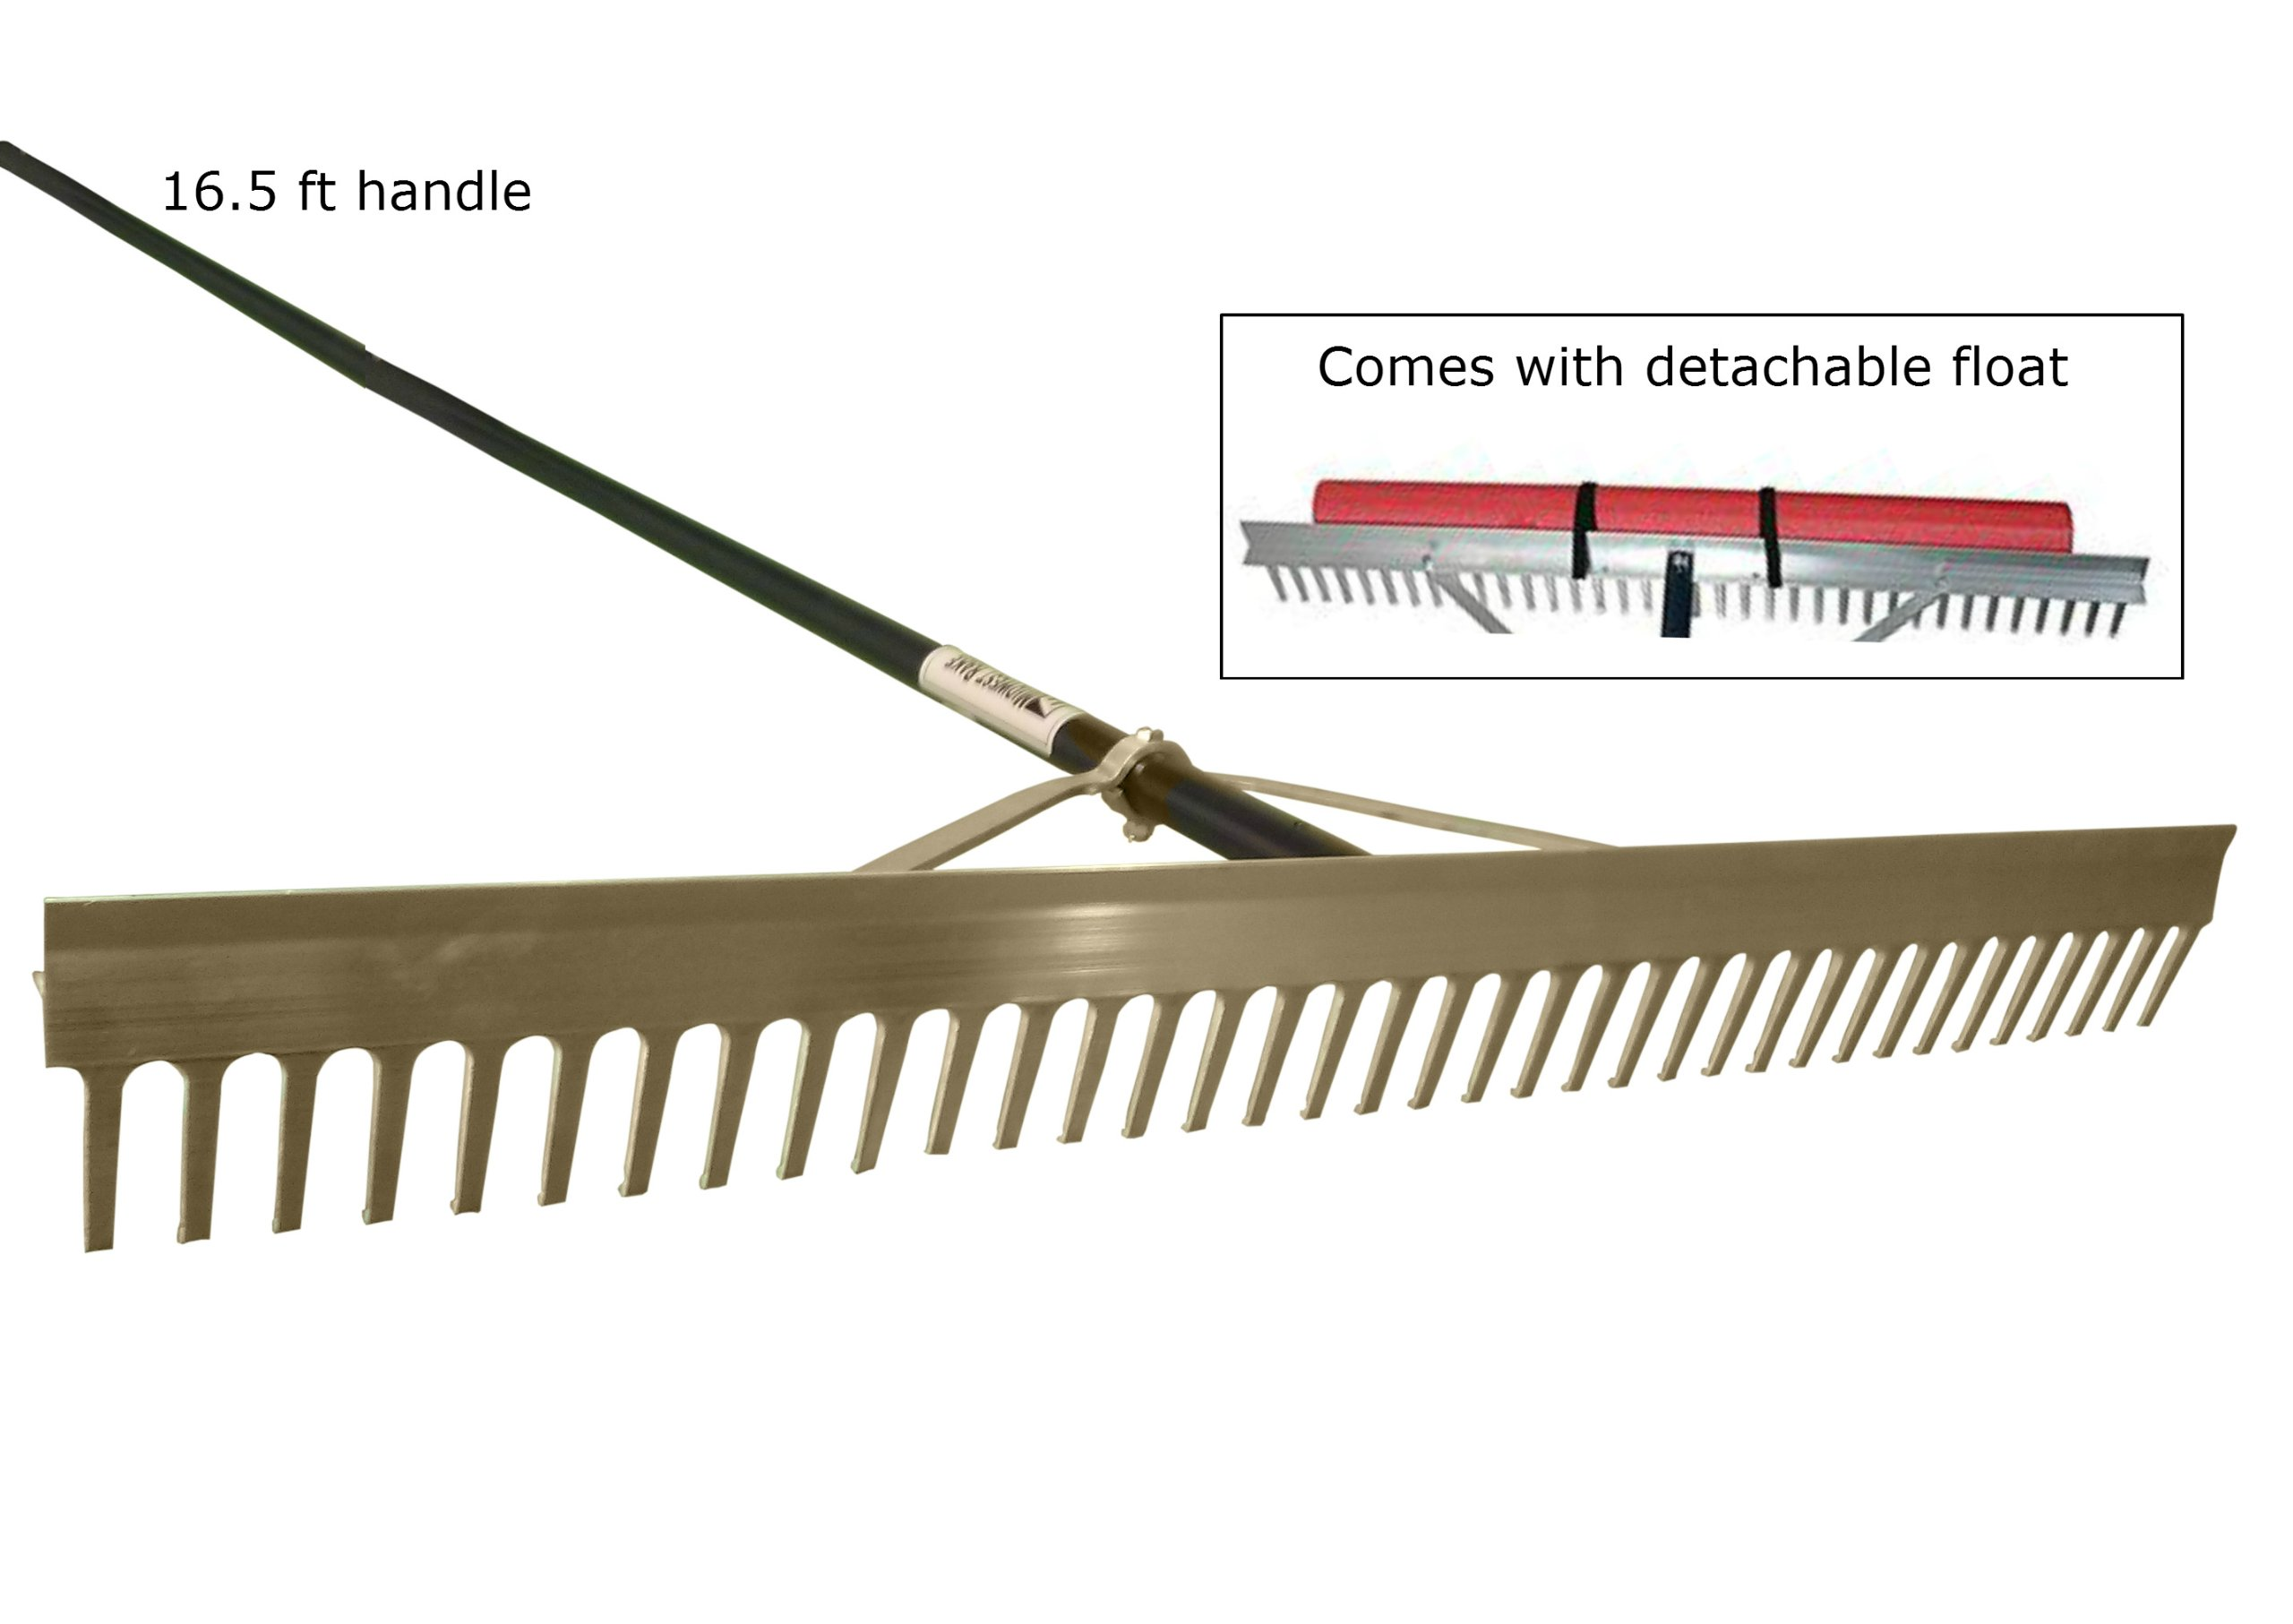 Super Long / Wide Lake Weed, Beach & Landscaping Rake - 36 inch Wide Head with 16.5 Ft Long Handle by Rake